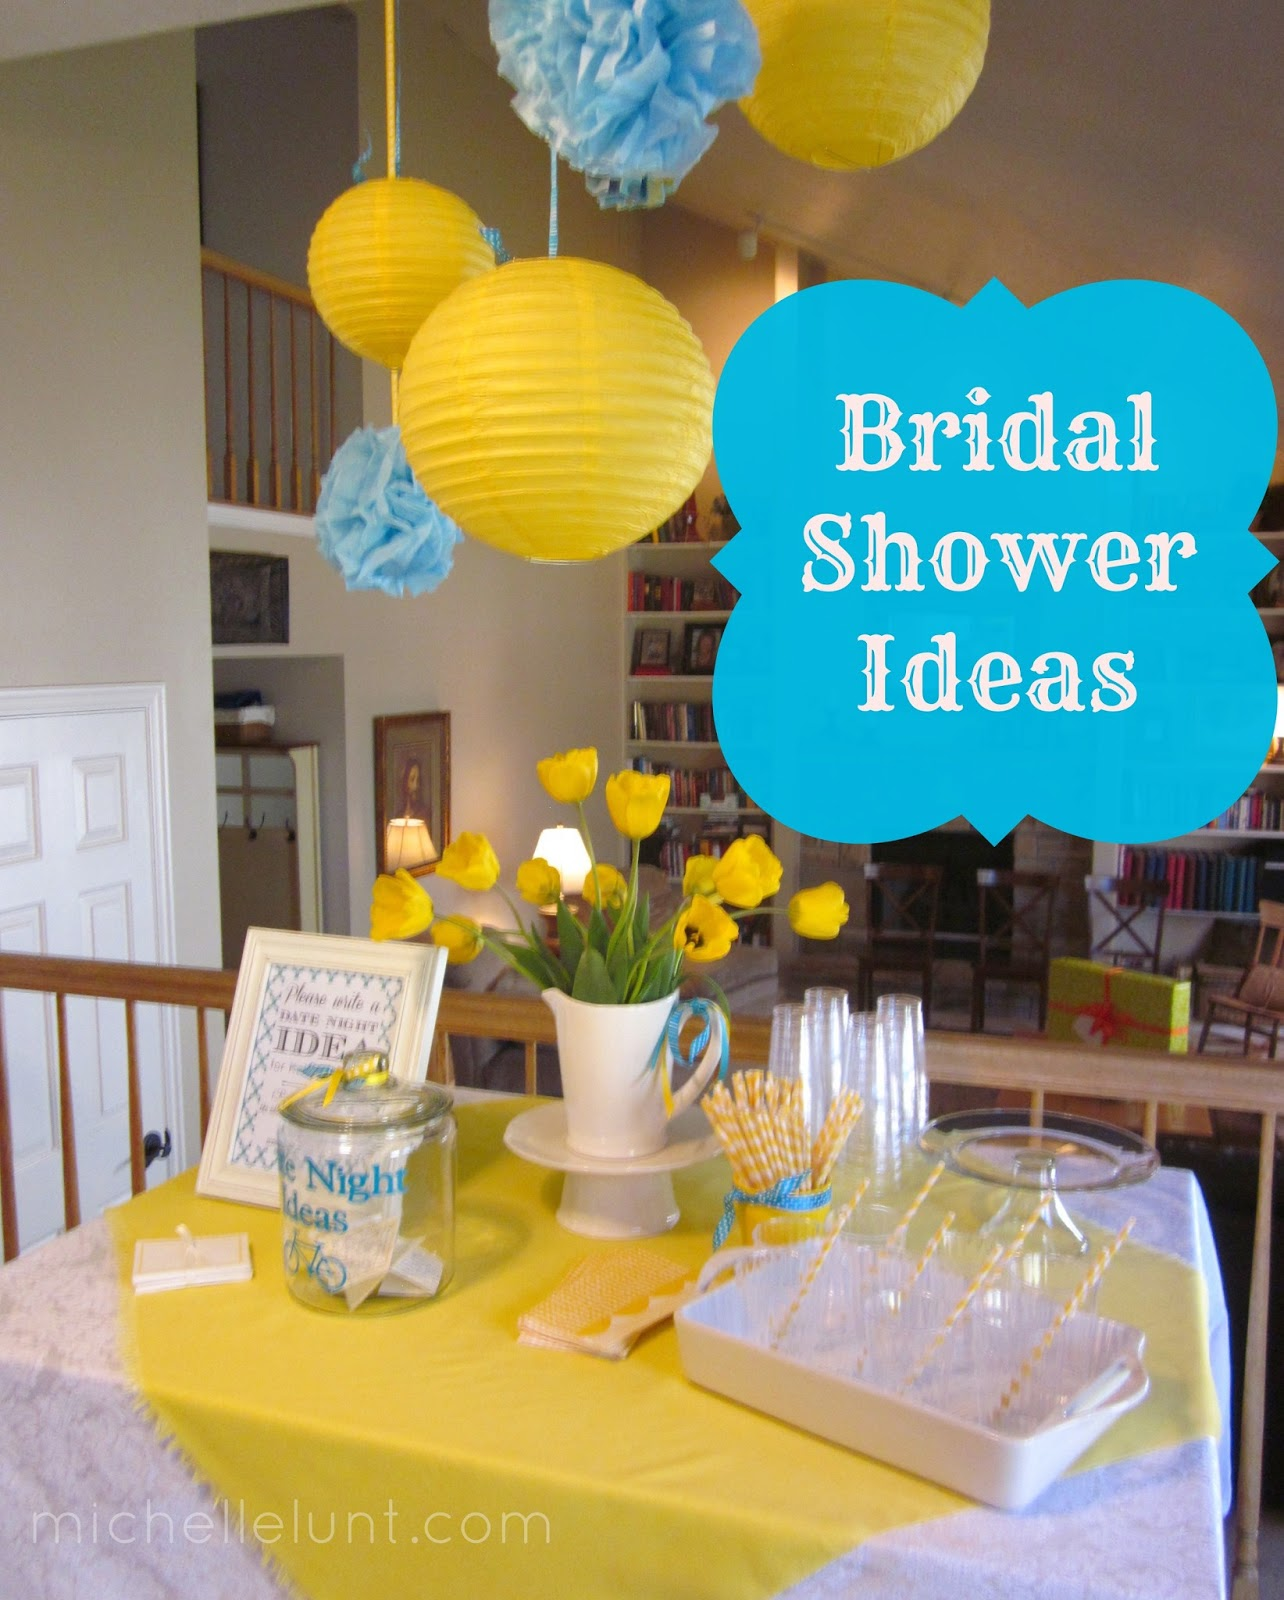 Honey I39;m Home: 5 Tips for Hosting a Bridal Shower